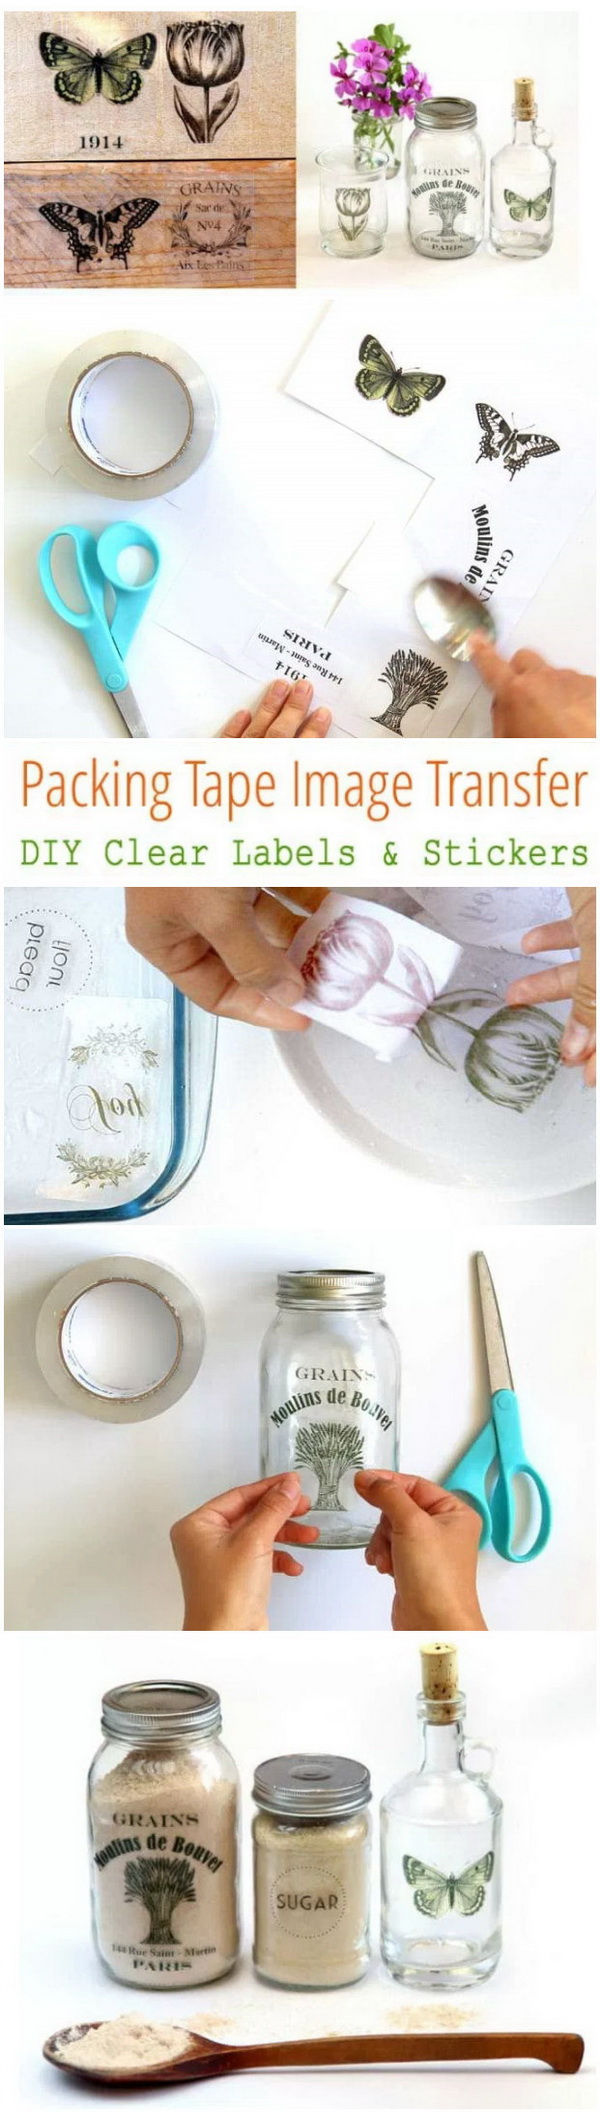 DIY Clear Labels And Stickers: Image Transfer Using Packing Tape.